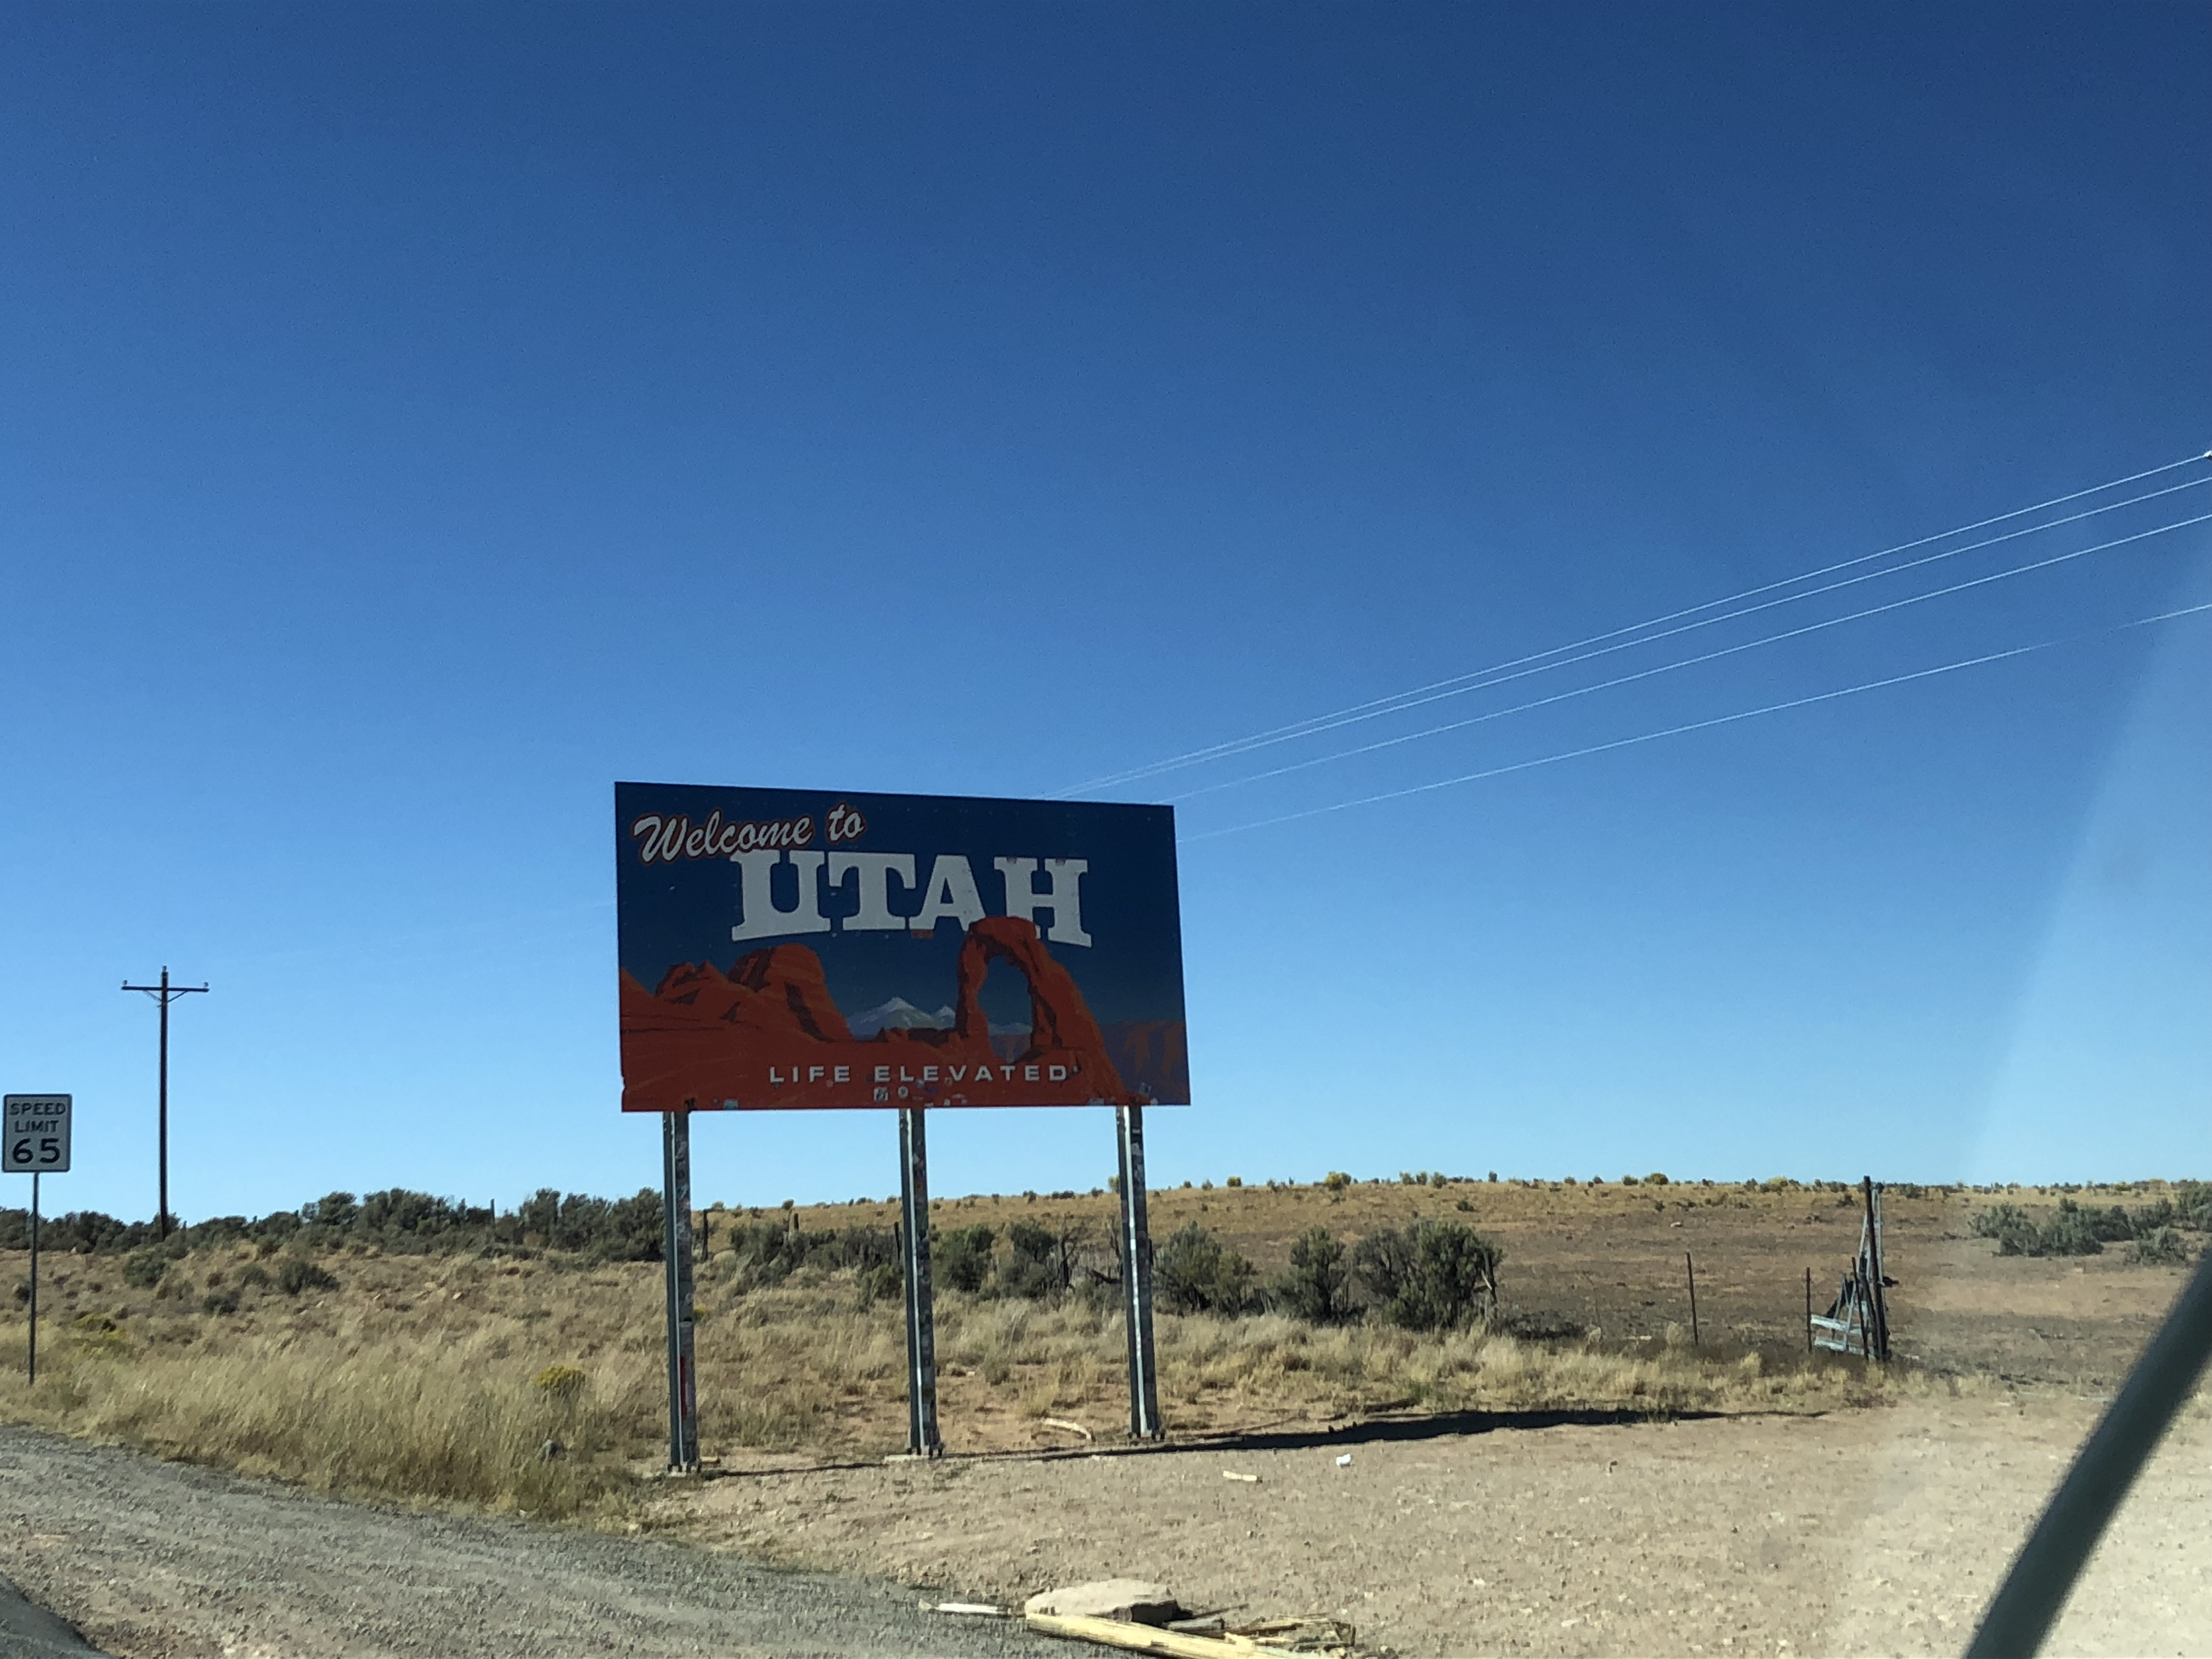 Sign promoting Utah against clear blue sky